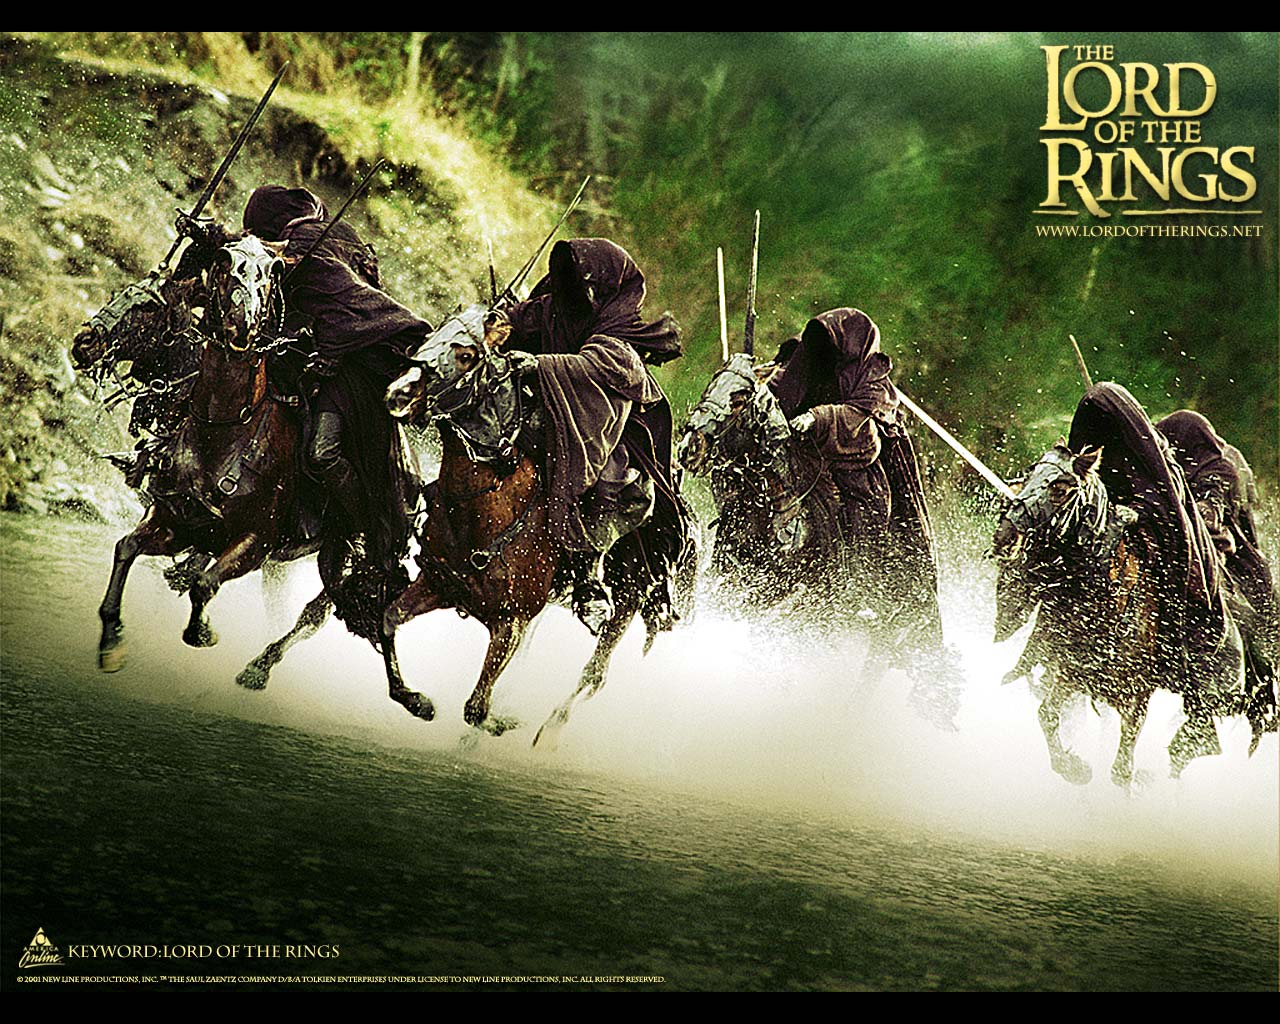 The Lord of the Rings   Lord of the Rings Wallpaper 113103 1280x1024